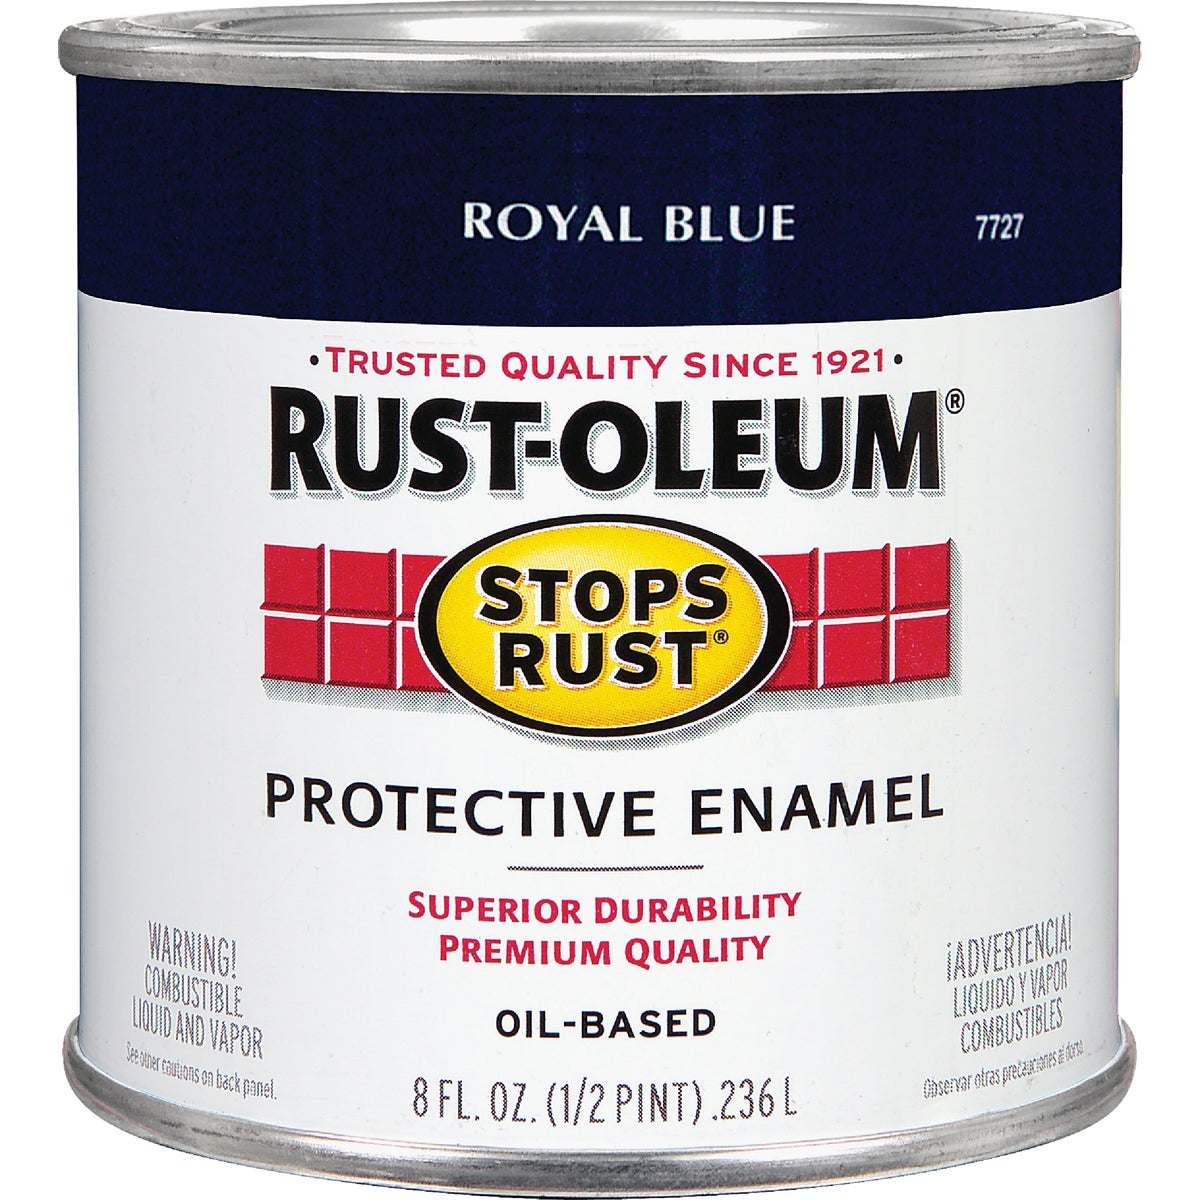 ROYAL BLUE ENAMEL - 7727-730 by Rustoleum